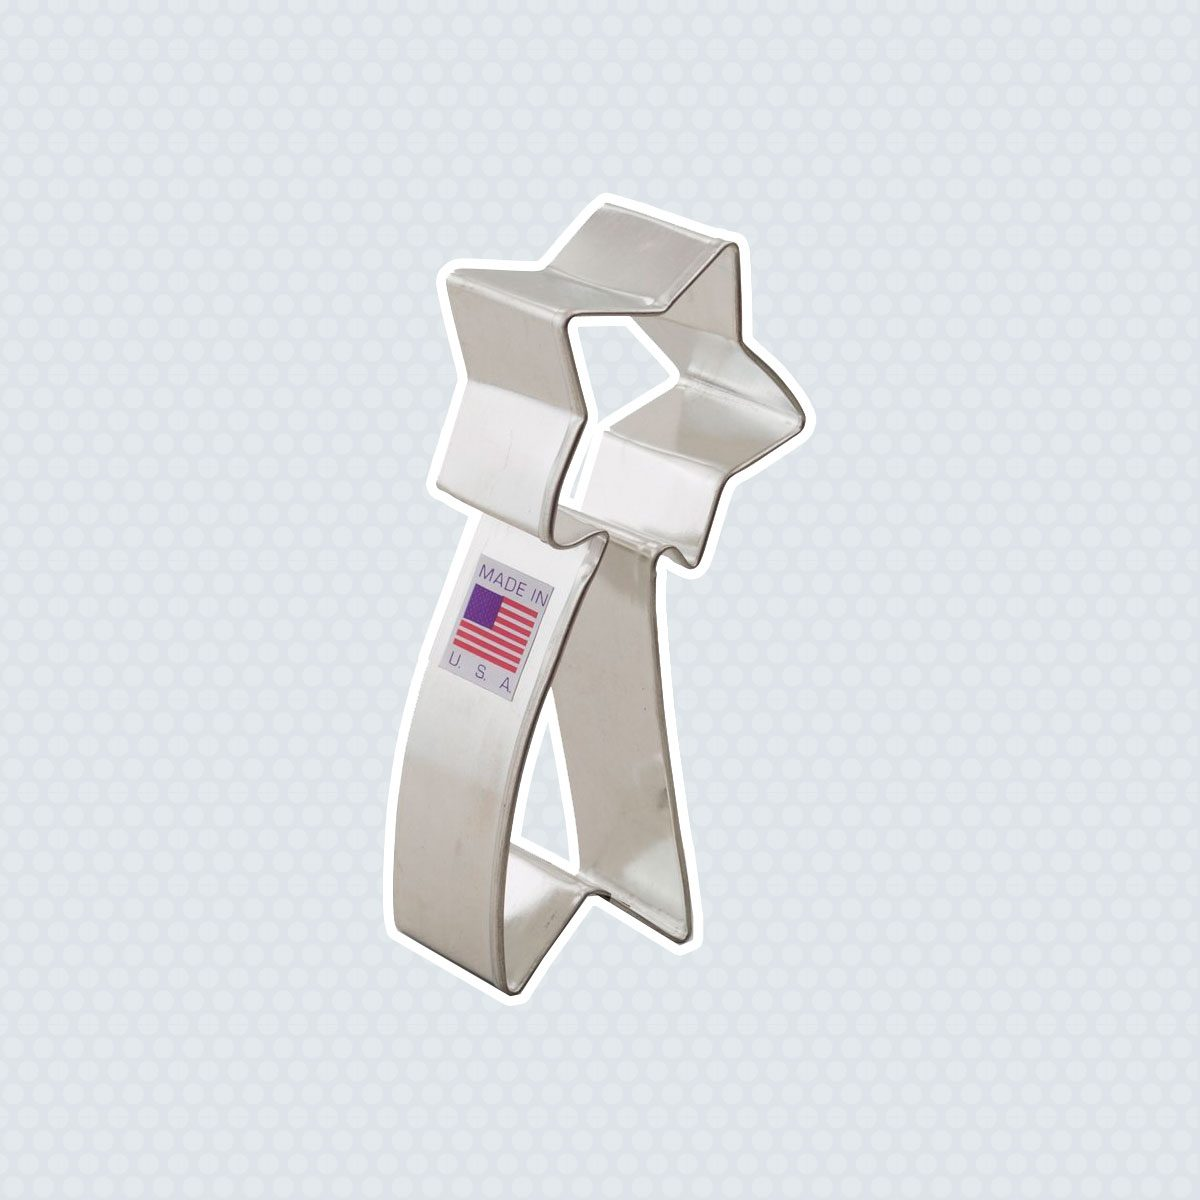 Ann Clark Falling Star Cookie Cutter - 4 Inches - Tin Plated Steel